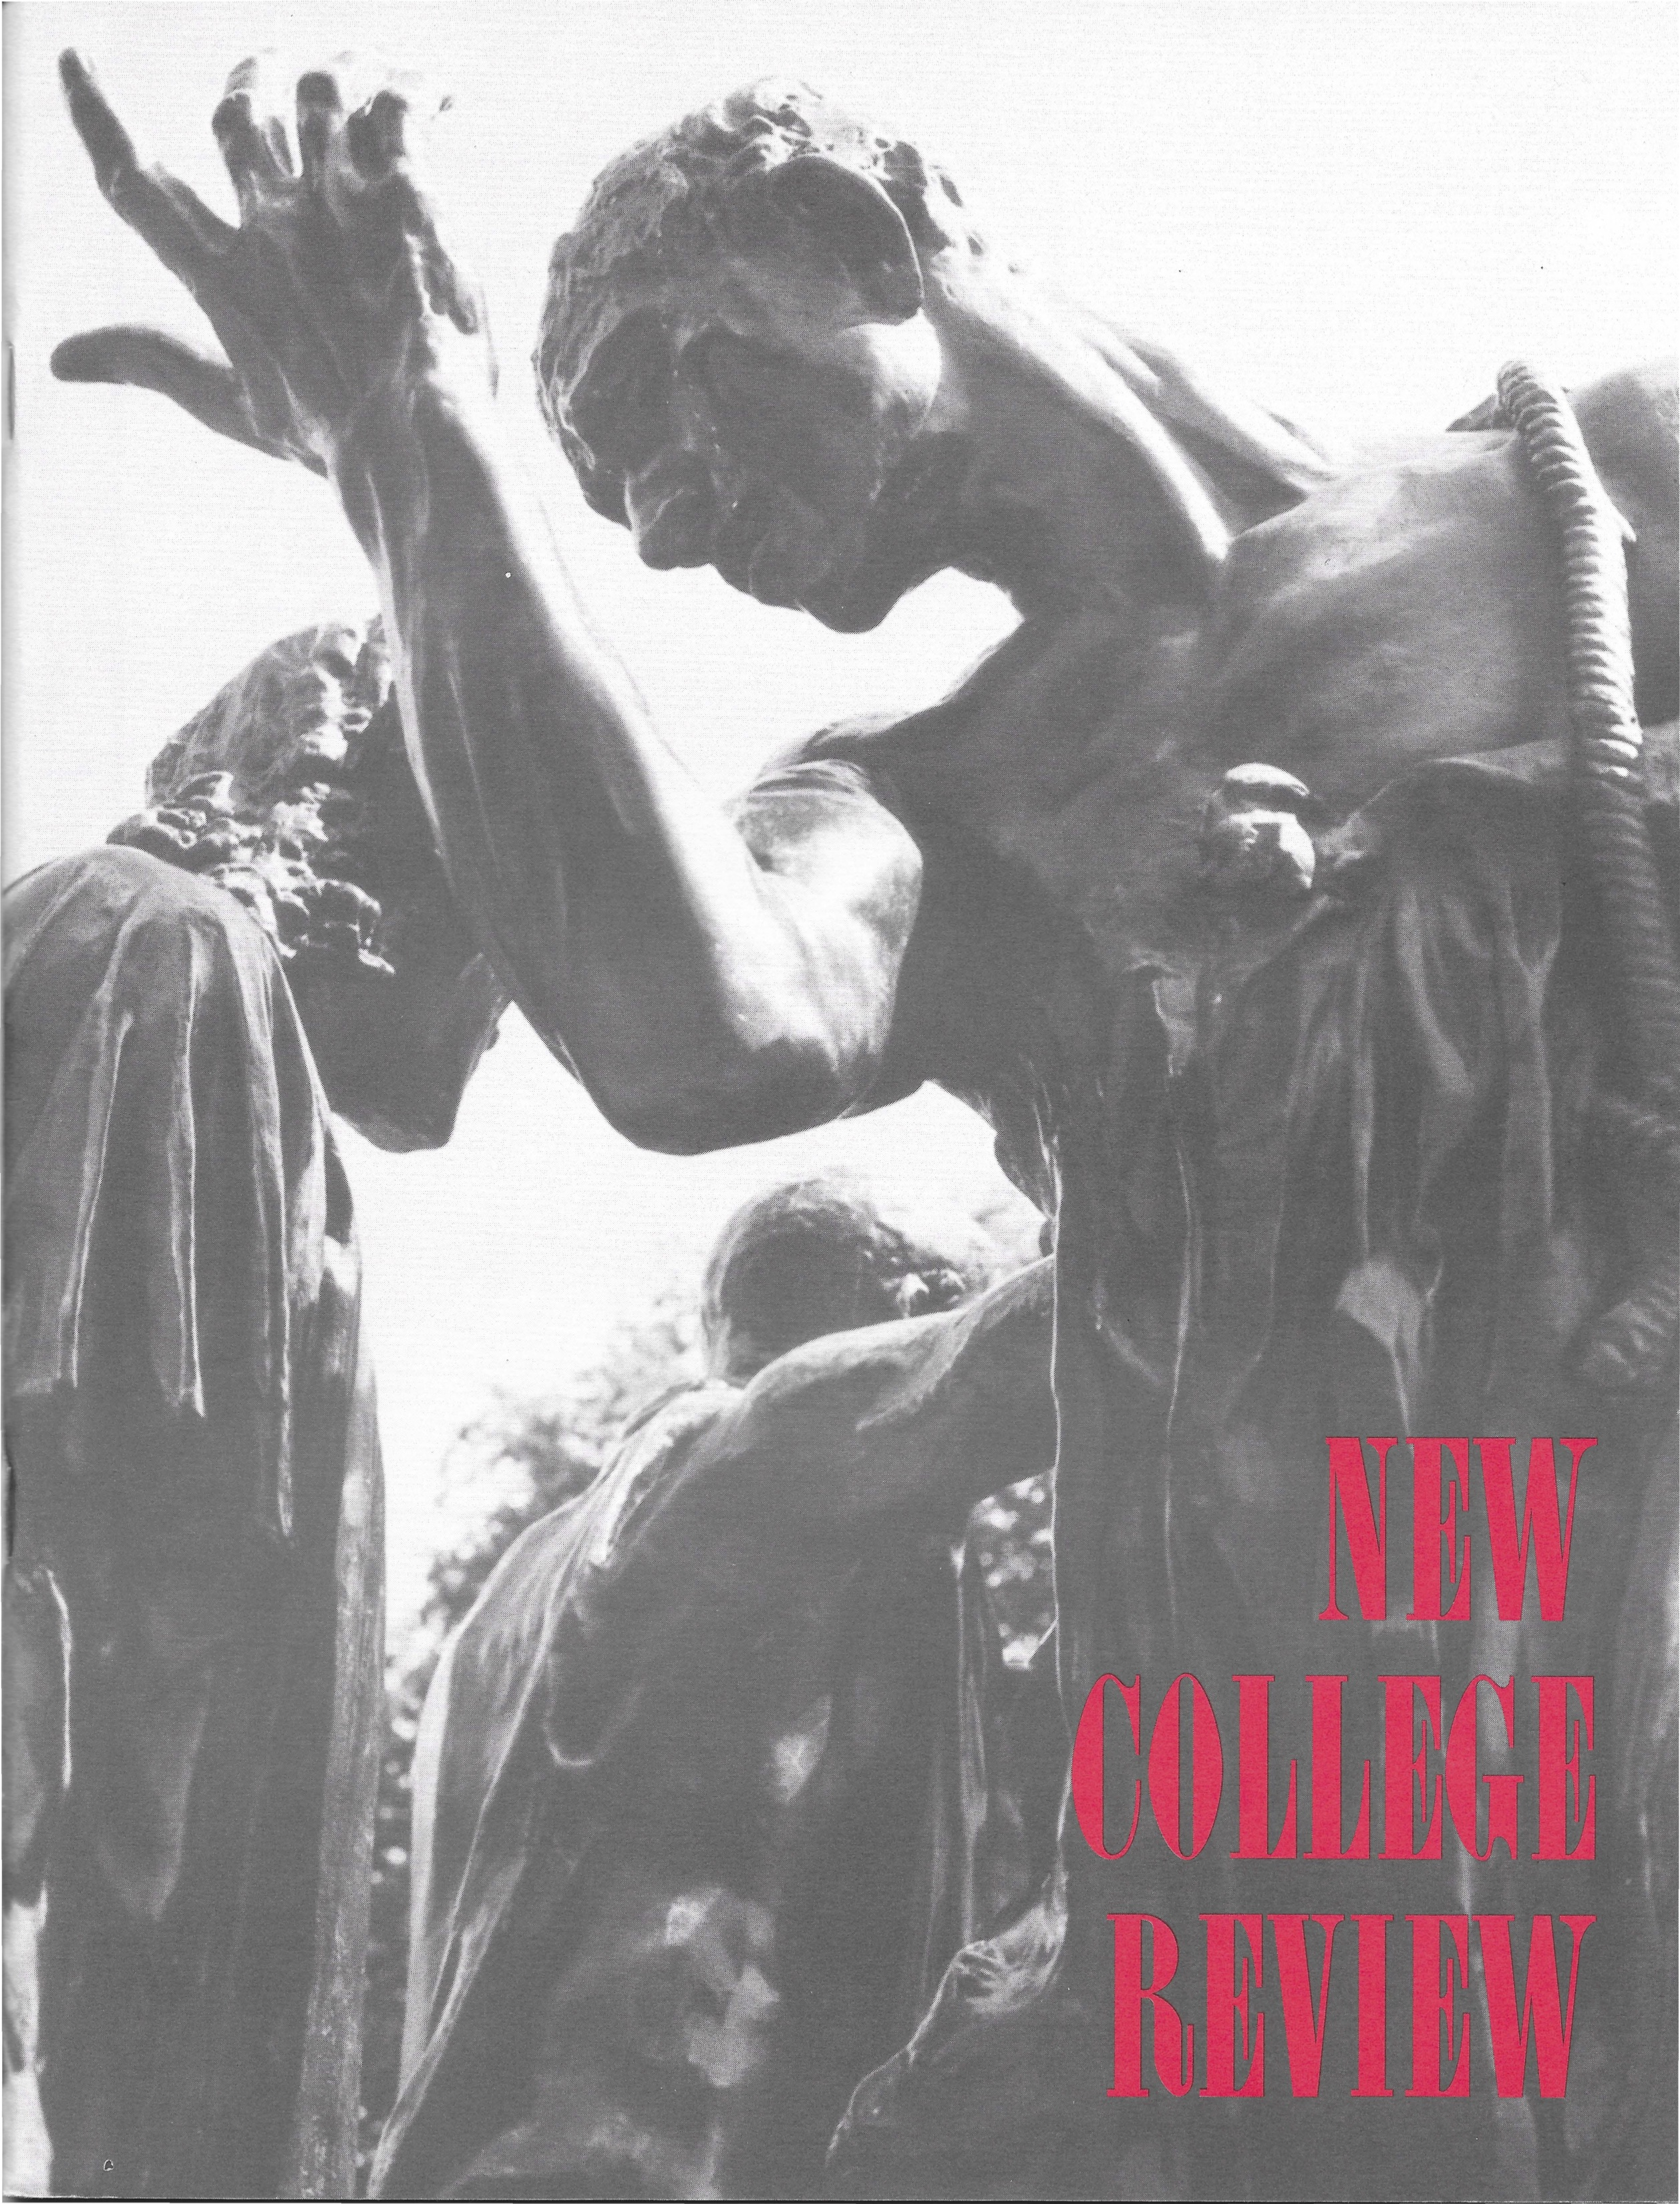 Cover of New College Review issue from 1992 with sculptures of human figures